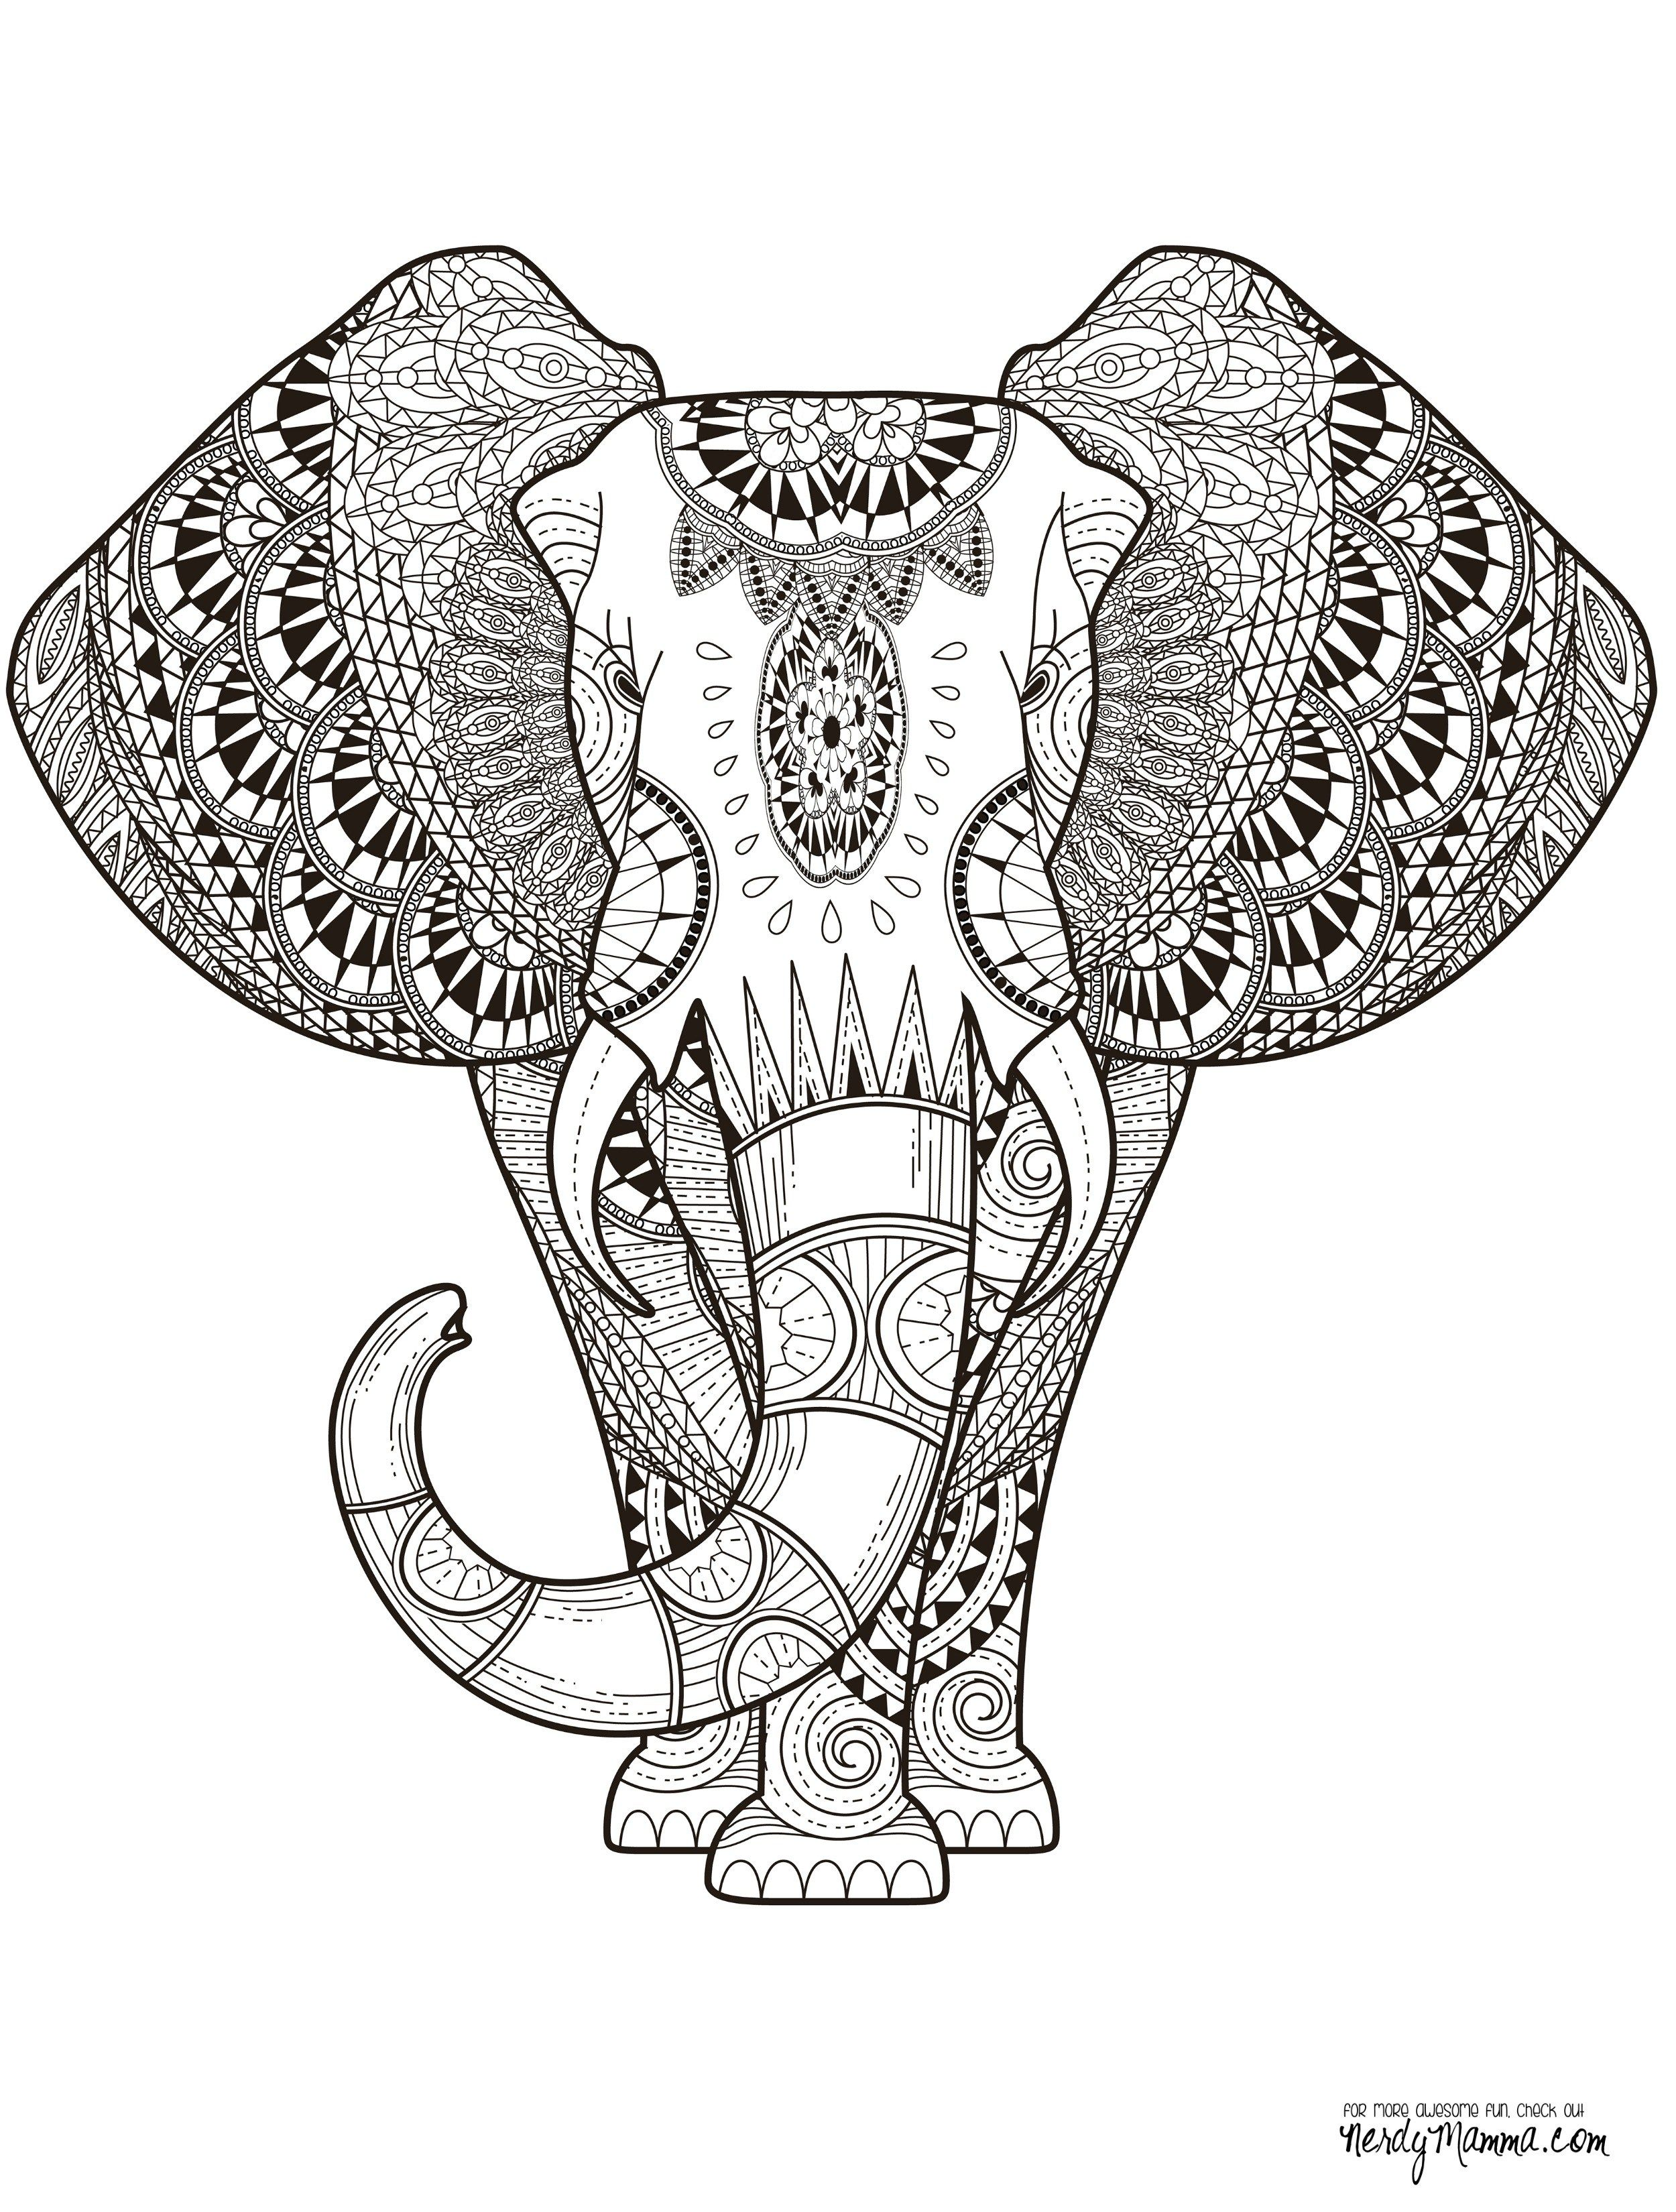 adult coloring pages elephants Elephant Abstract Doodle Zentangle Paisley Coloring pages  adult coloring pages elephants